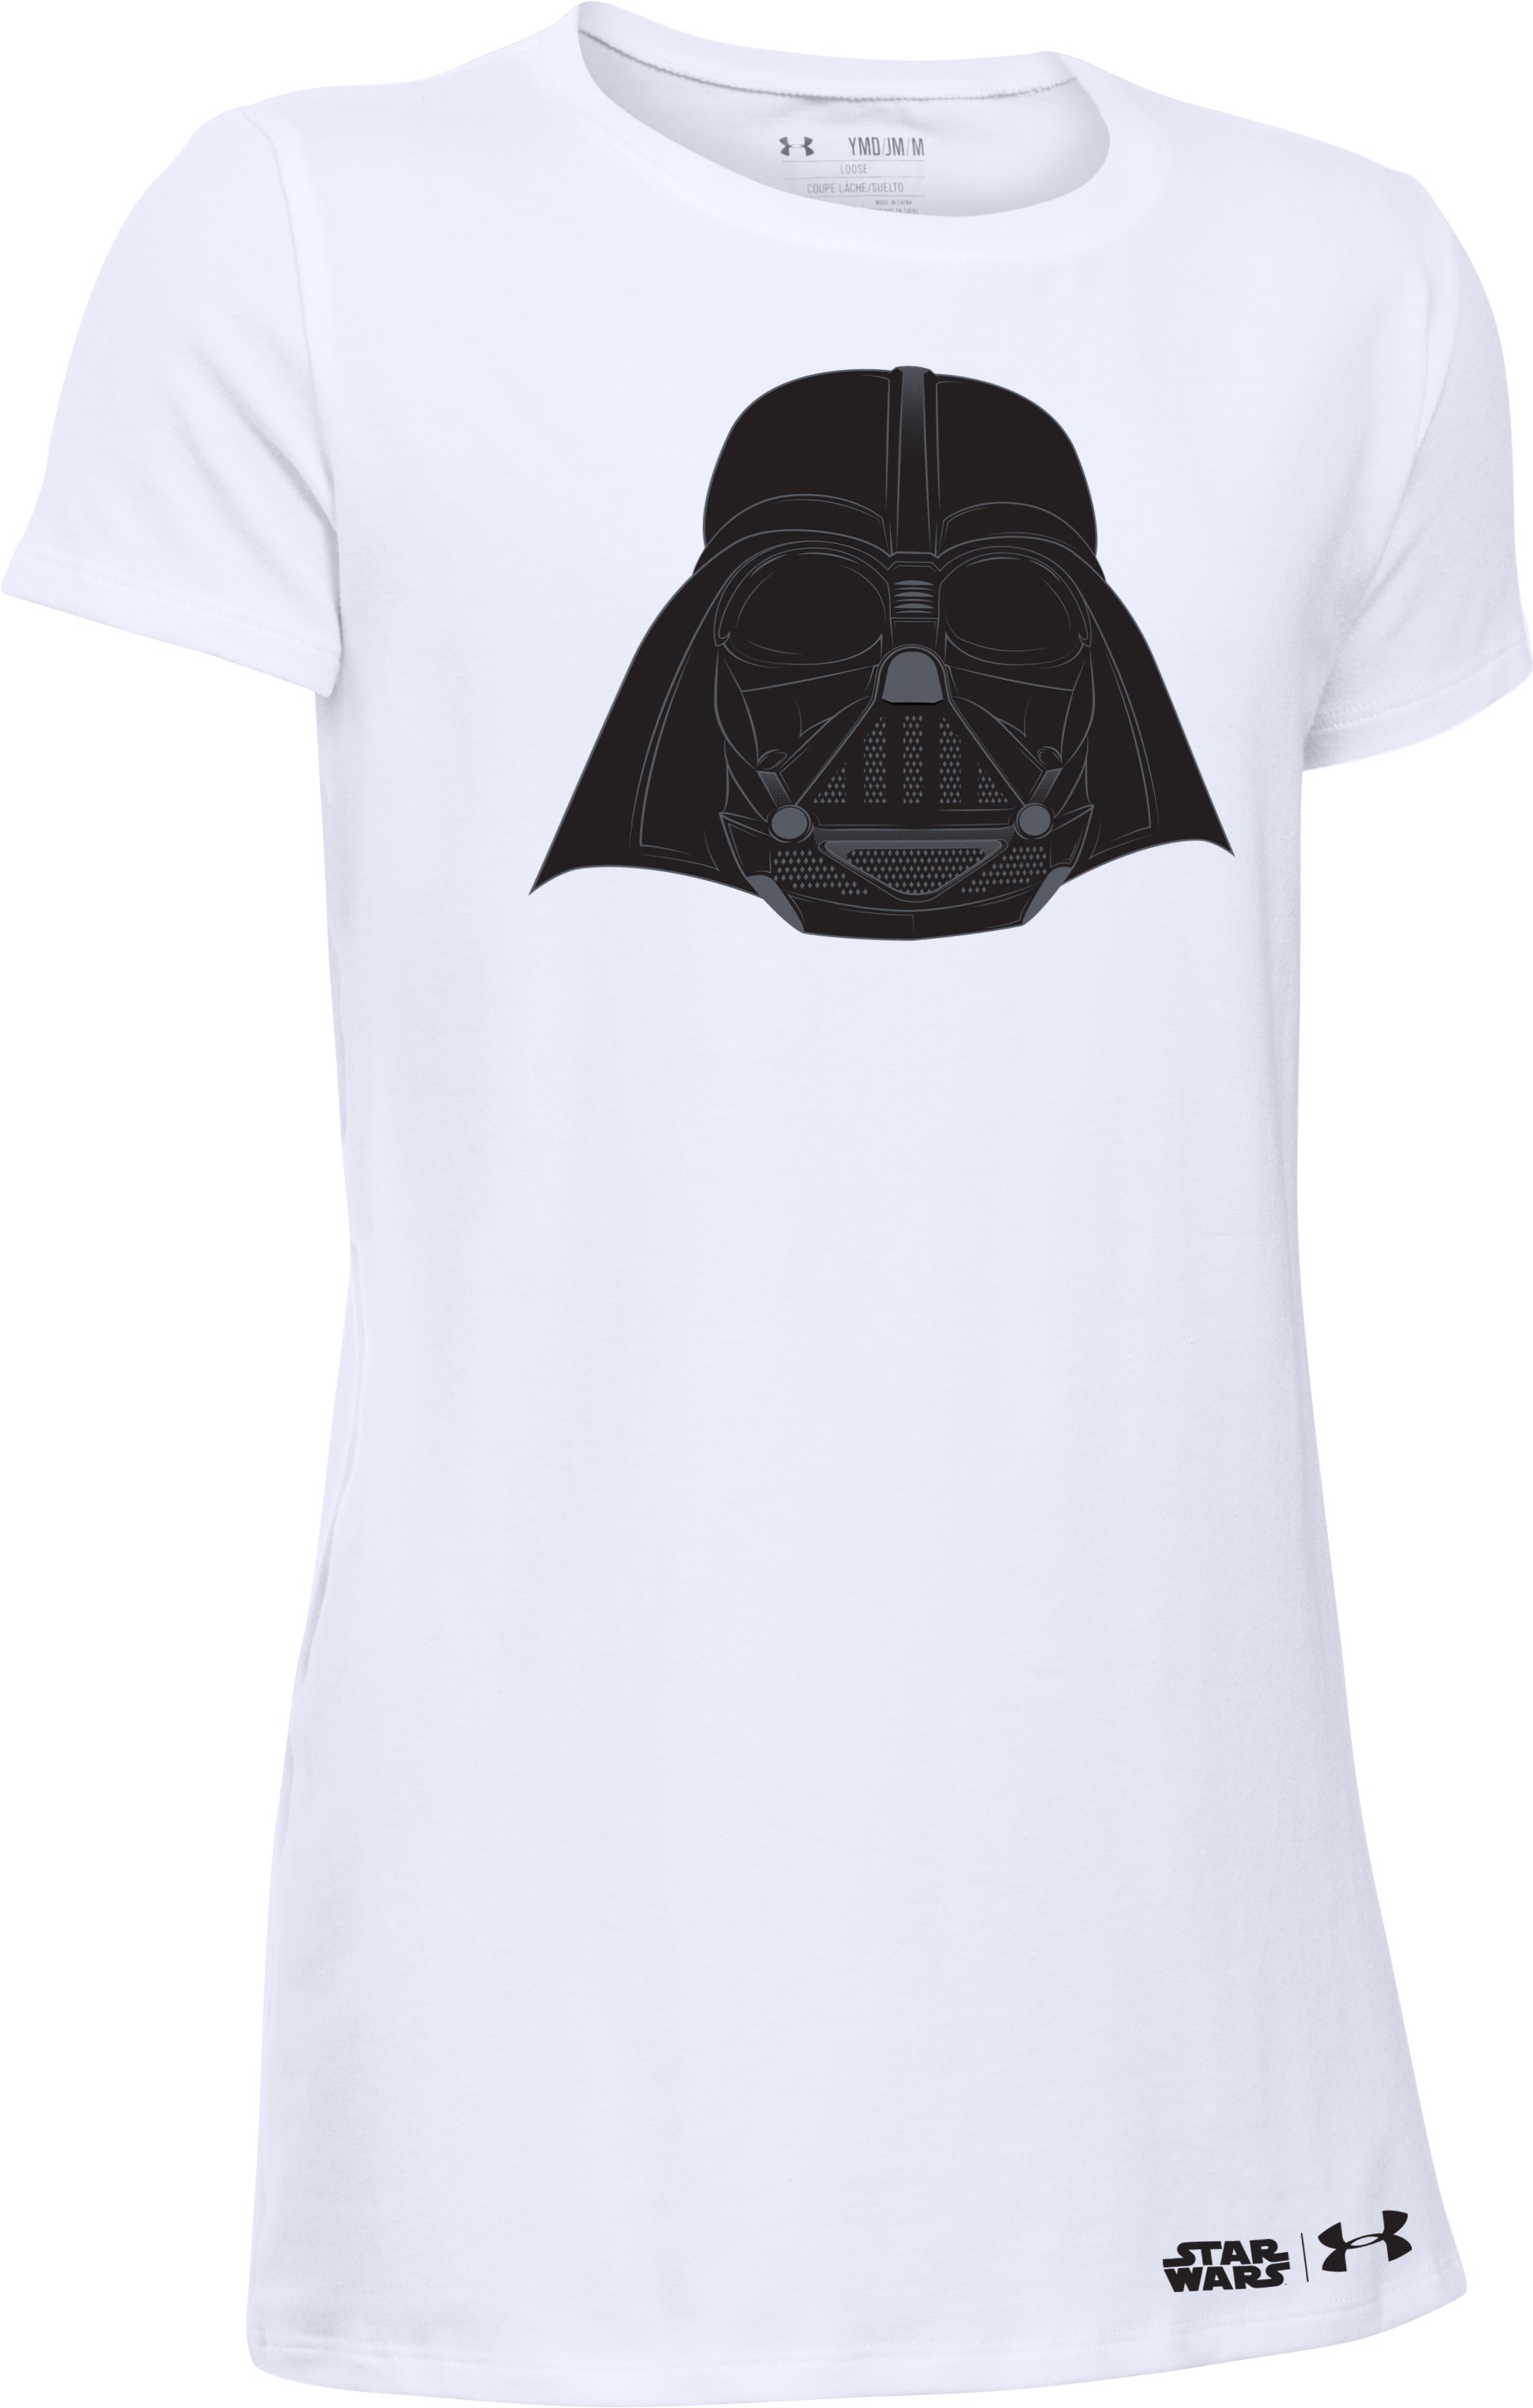 Girls' Star Wars Darth Vader Short Sleeve T-Shirt, White